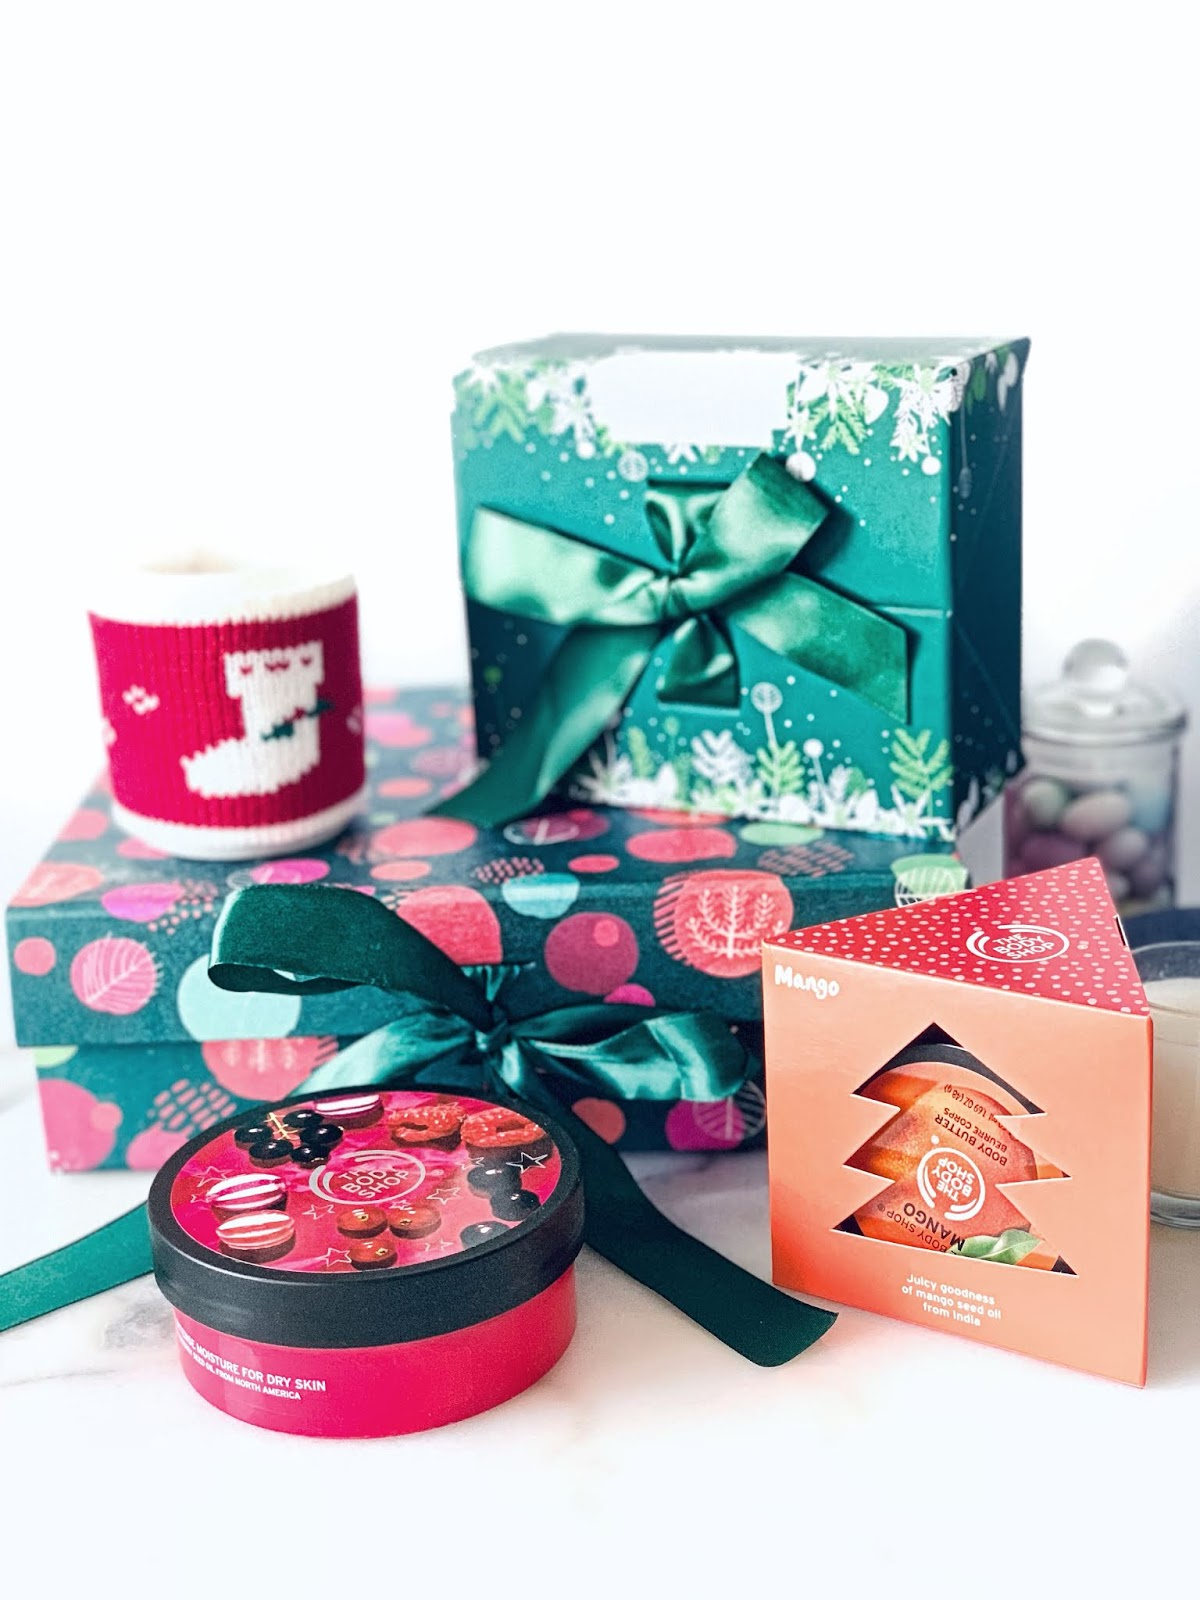 Christmas Gift Sets Body Shop.L I V I A Share The Joy Of Christmas With The Latest Gift